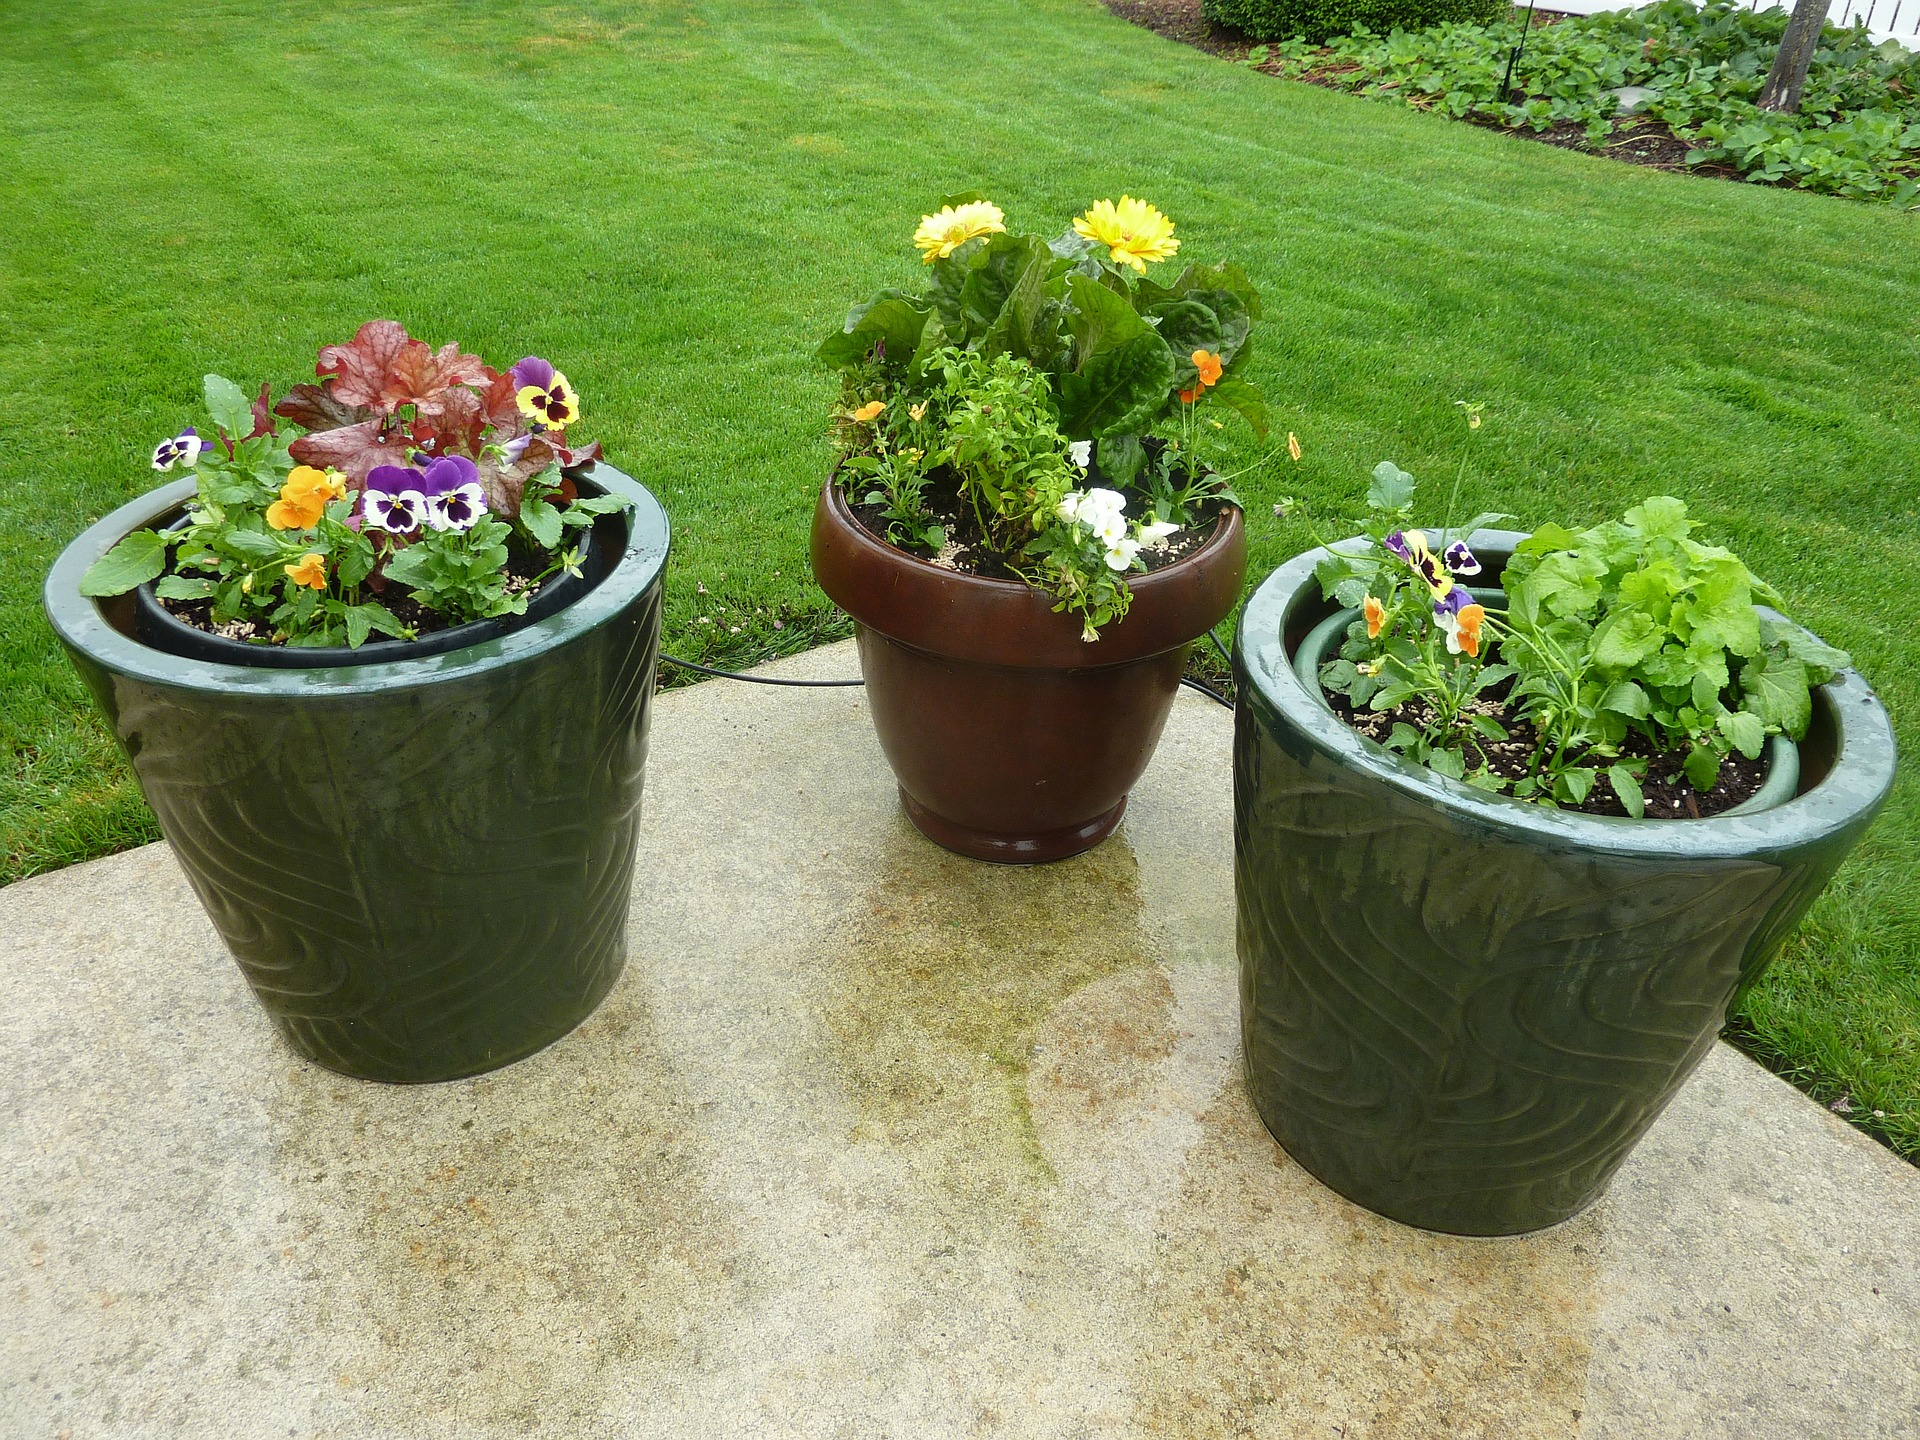 tidy backyard lawn with potted flowers